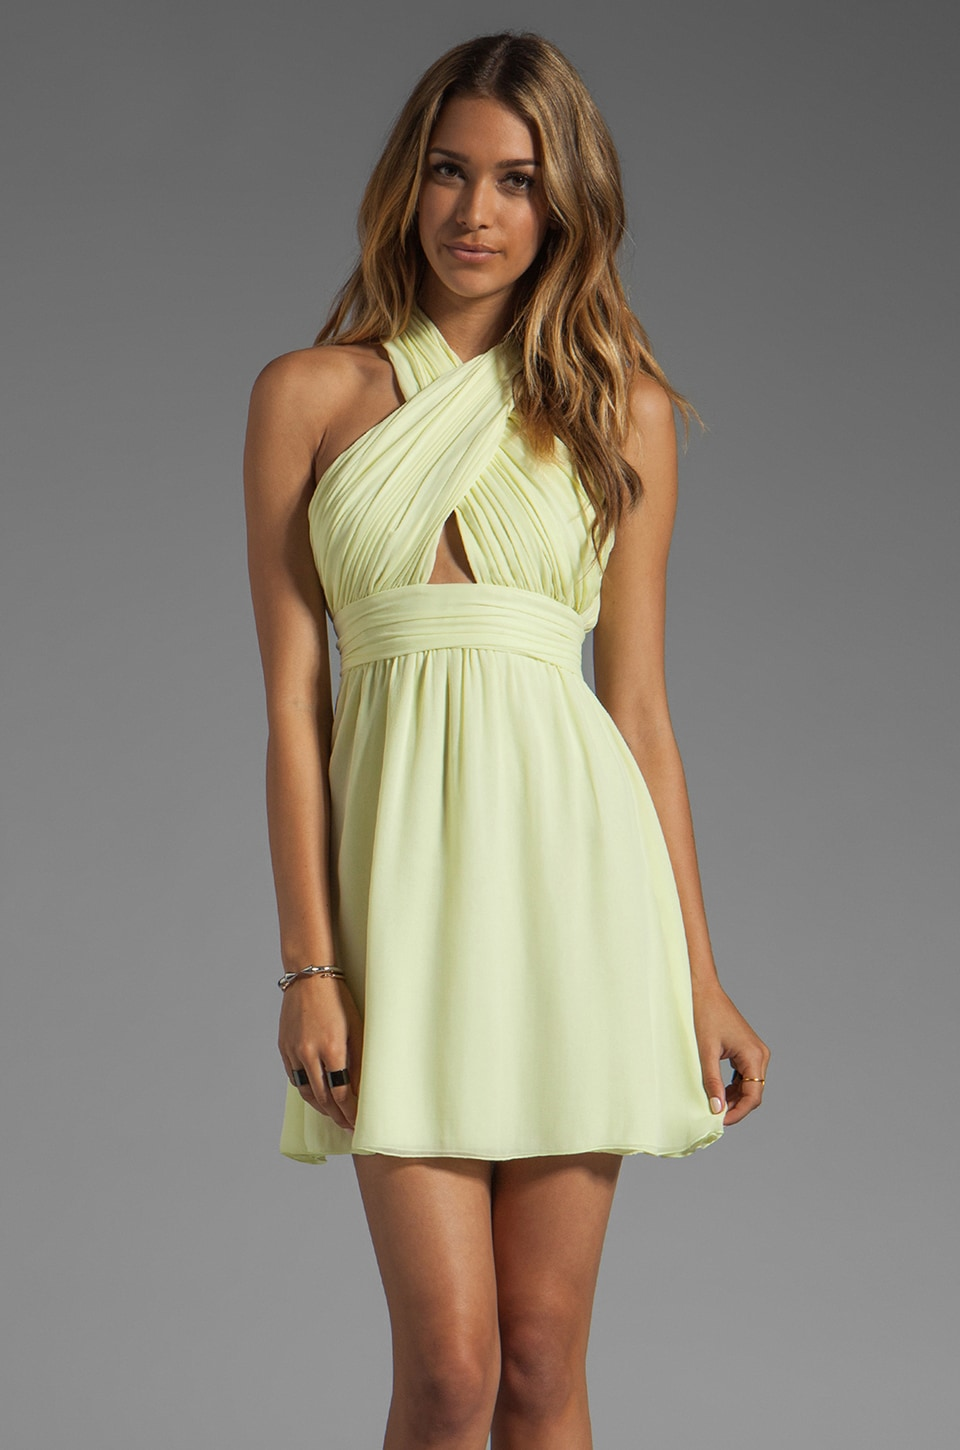 Alice + Olivia Martine Wrap Bodice Tulip Skirt Dress in Limon